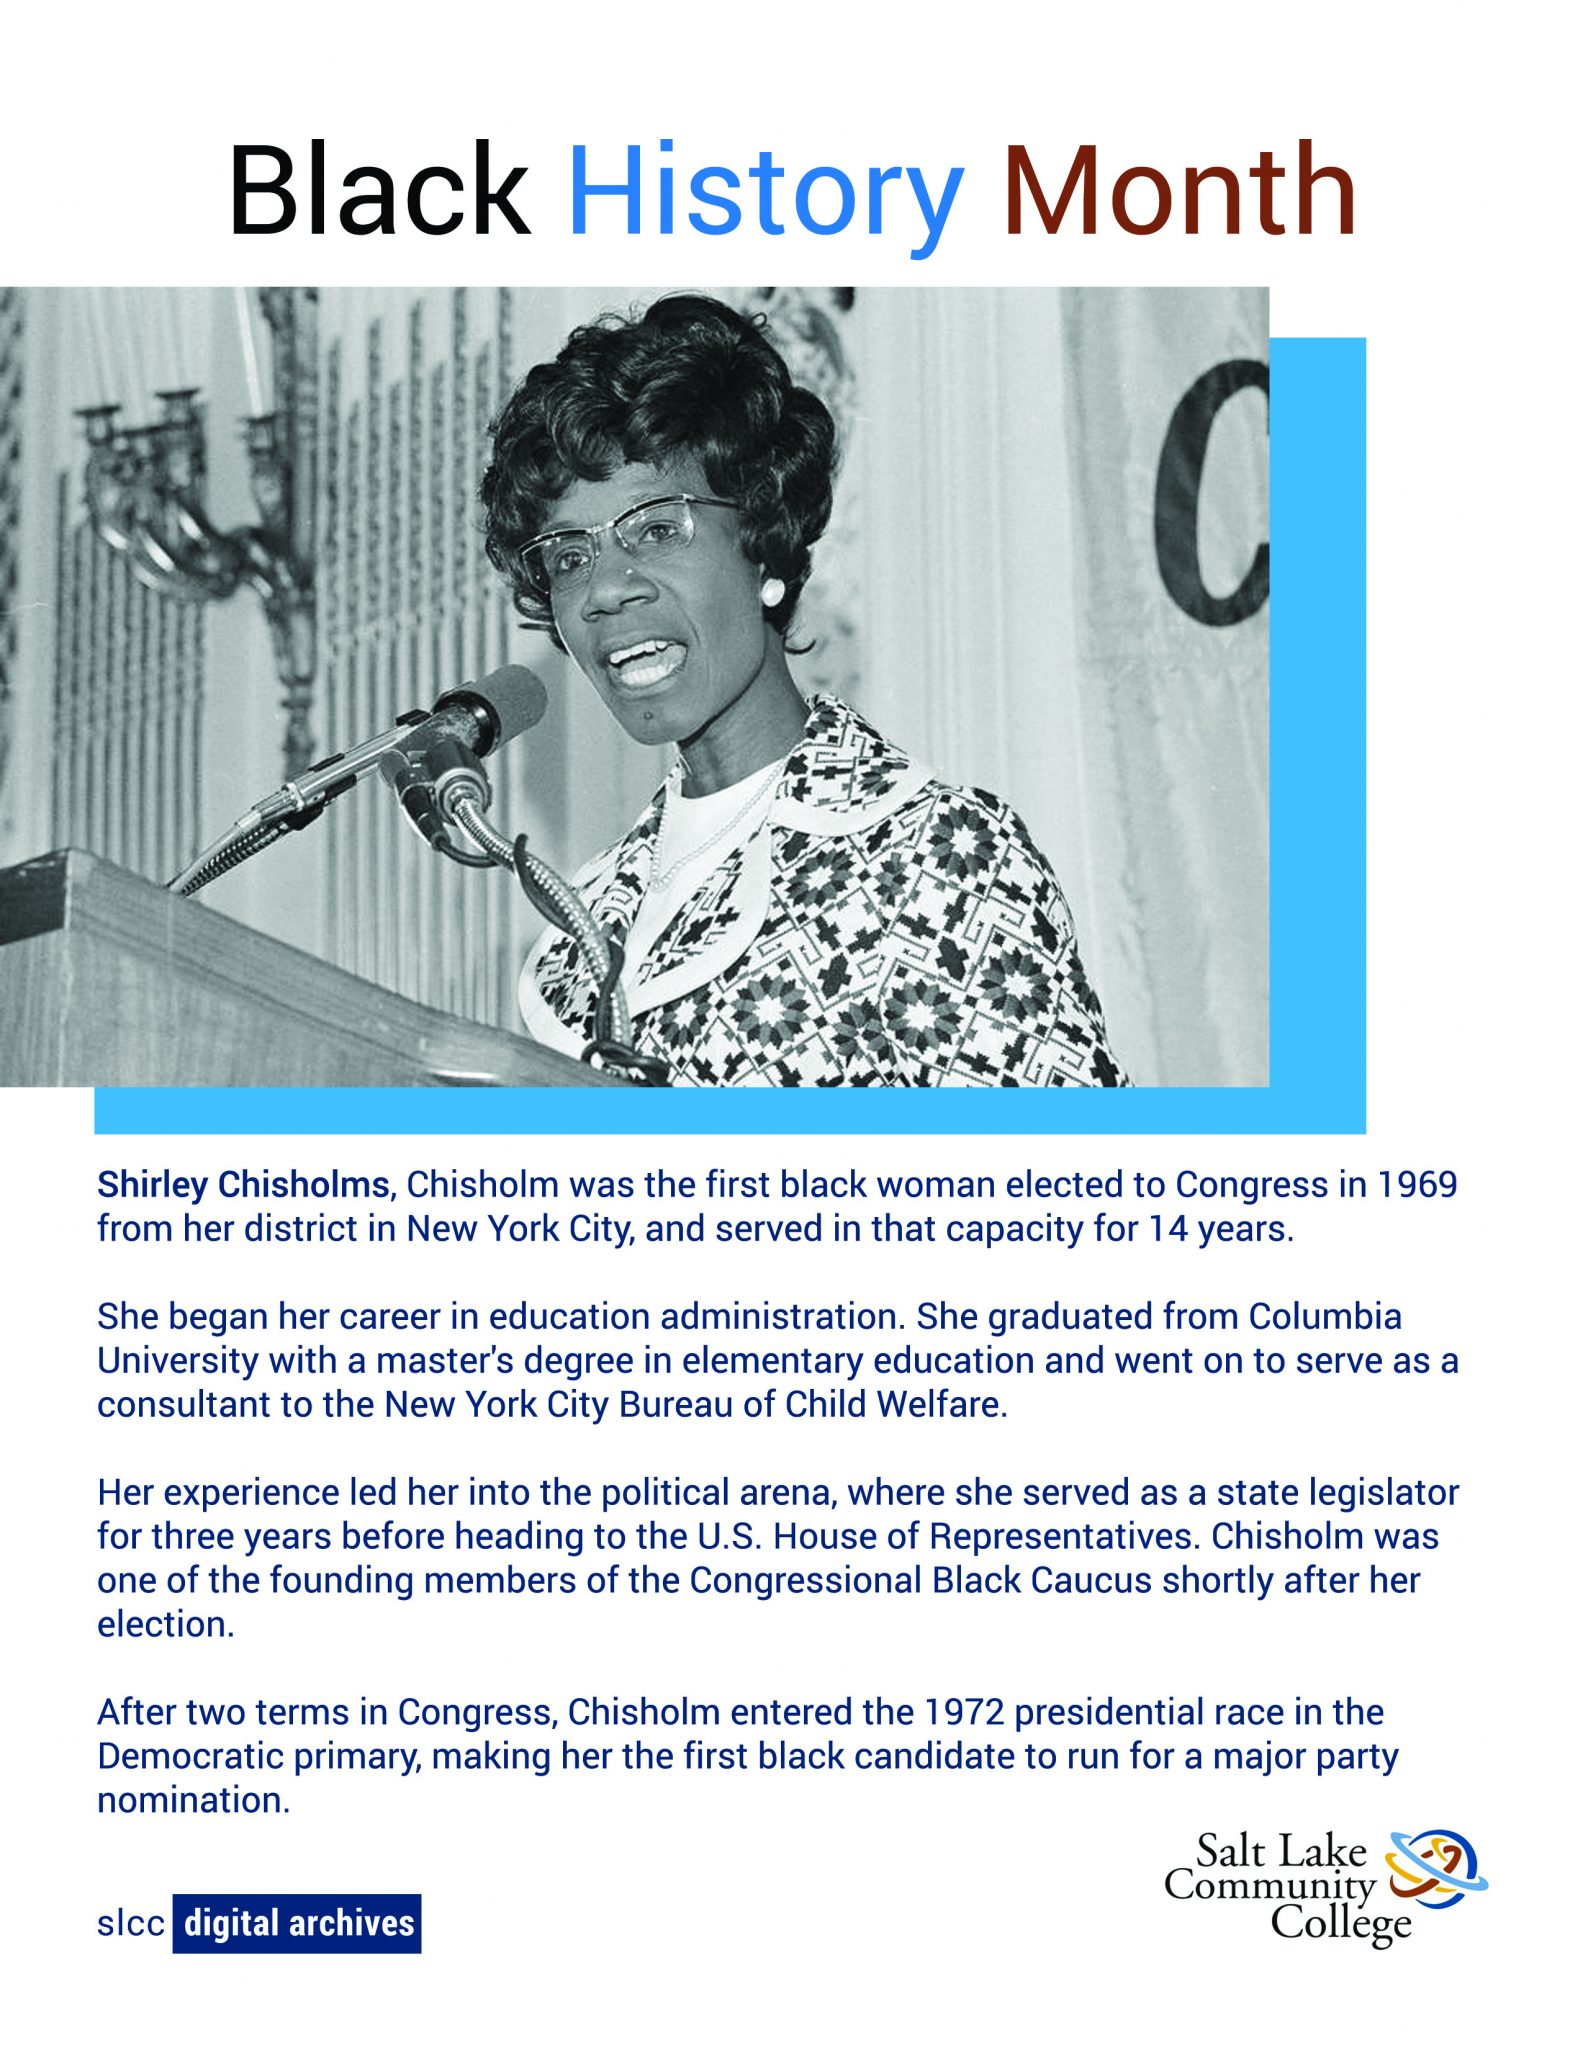 Photo of Shirley Chisholms the first Black Woman to run for president and first black woman to be elected to Congress.